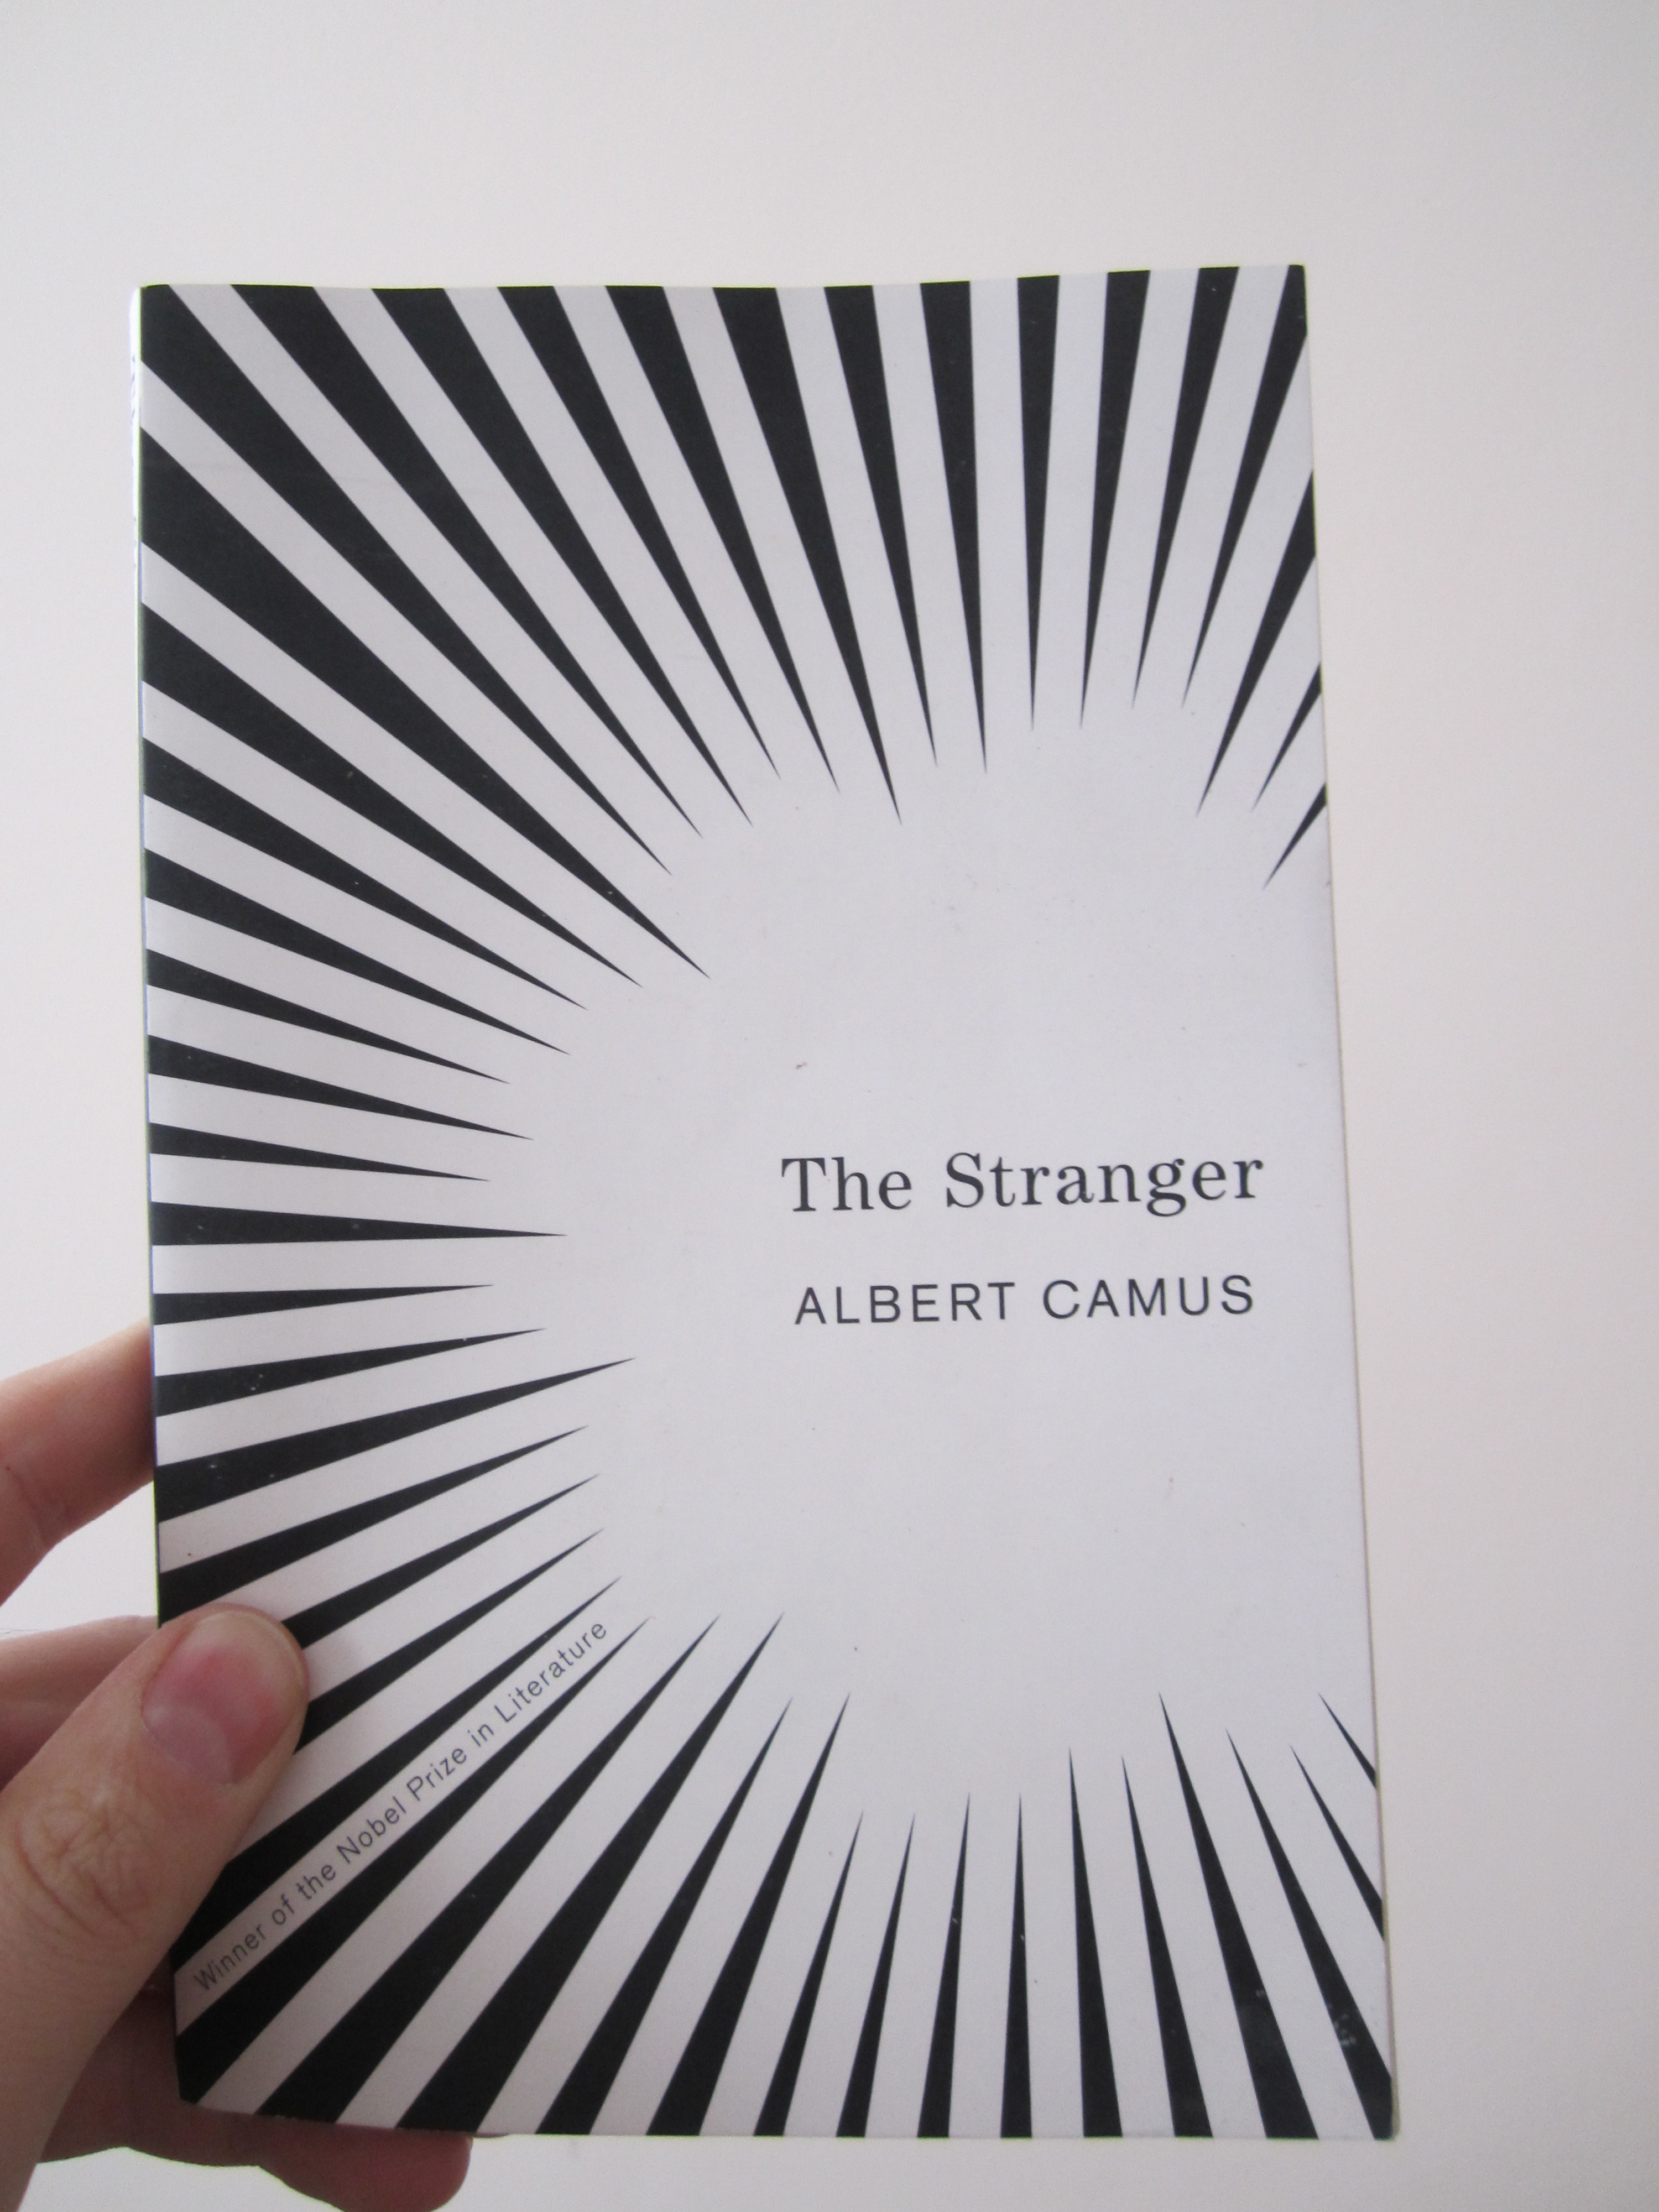 characteristics of meursault in the stranger by albert camus Albert camus's the stranger (1942/1982) is a good place to start drawing these   this will allow us to identify specific characteristics of the stranger that  in this  sense meursault is the object of strangeness, but this is the.